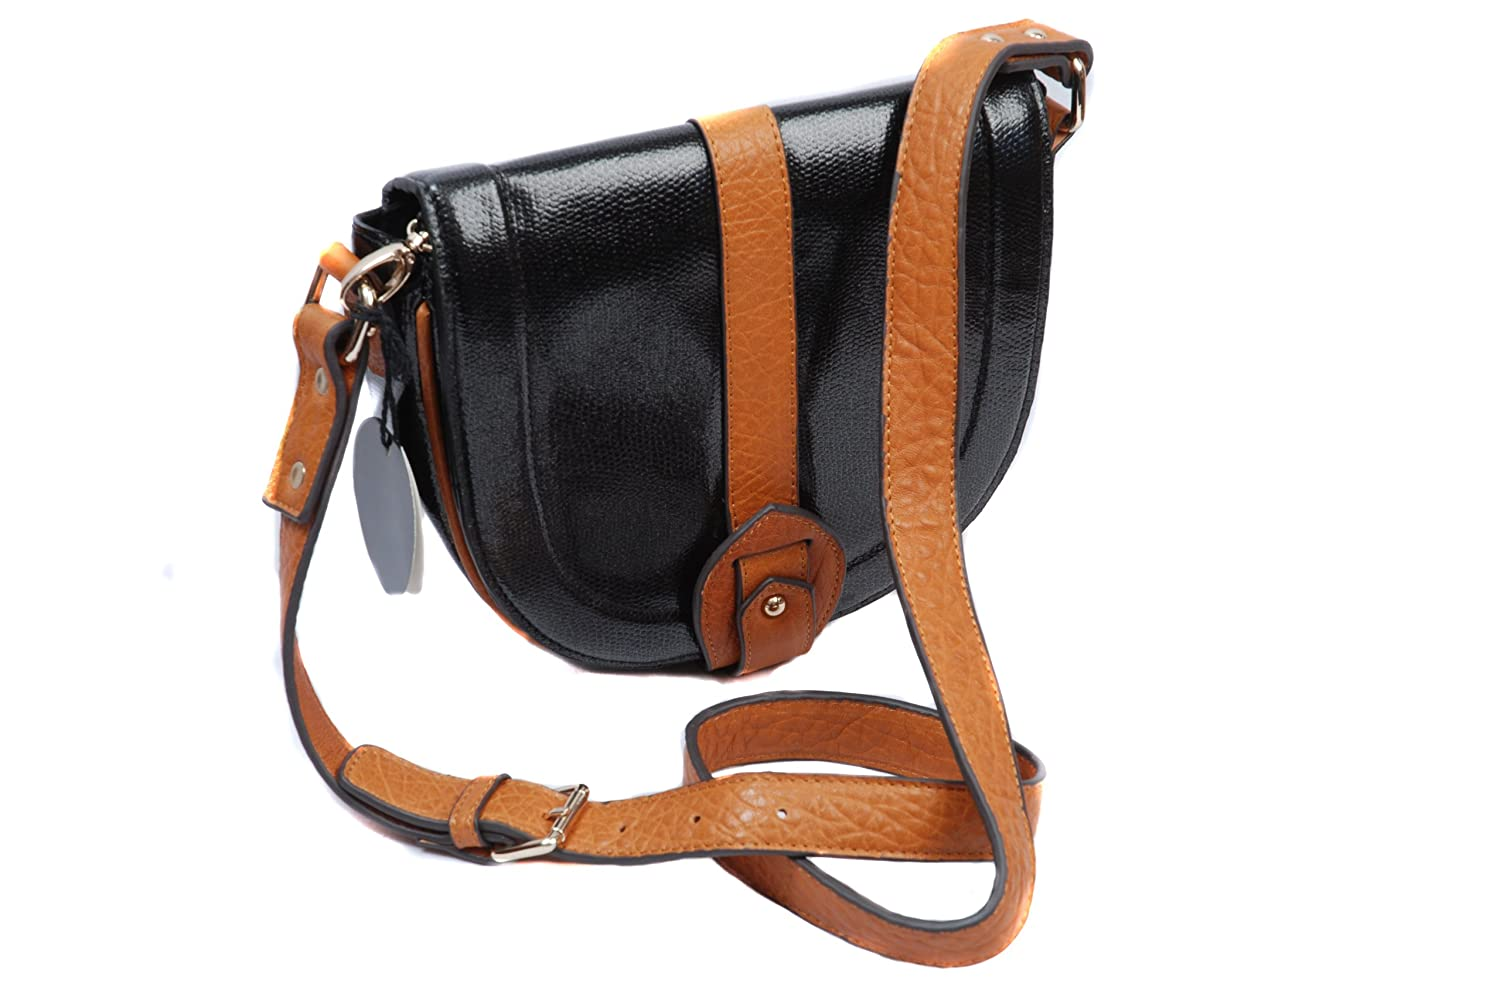 Black and tan patent small satchel shoulder handbag with leather strap by Dolly & Daisy